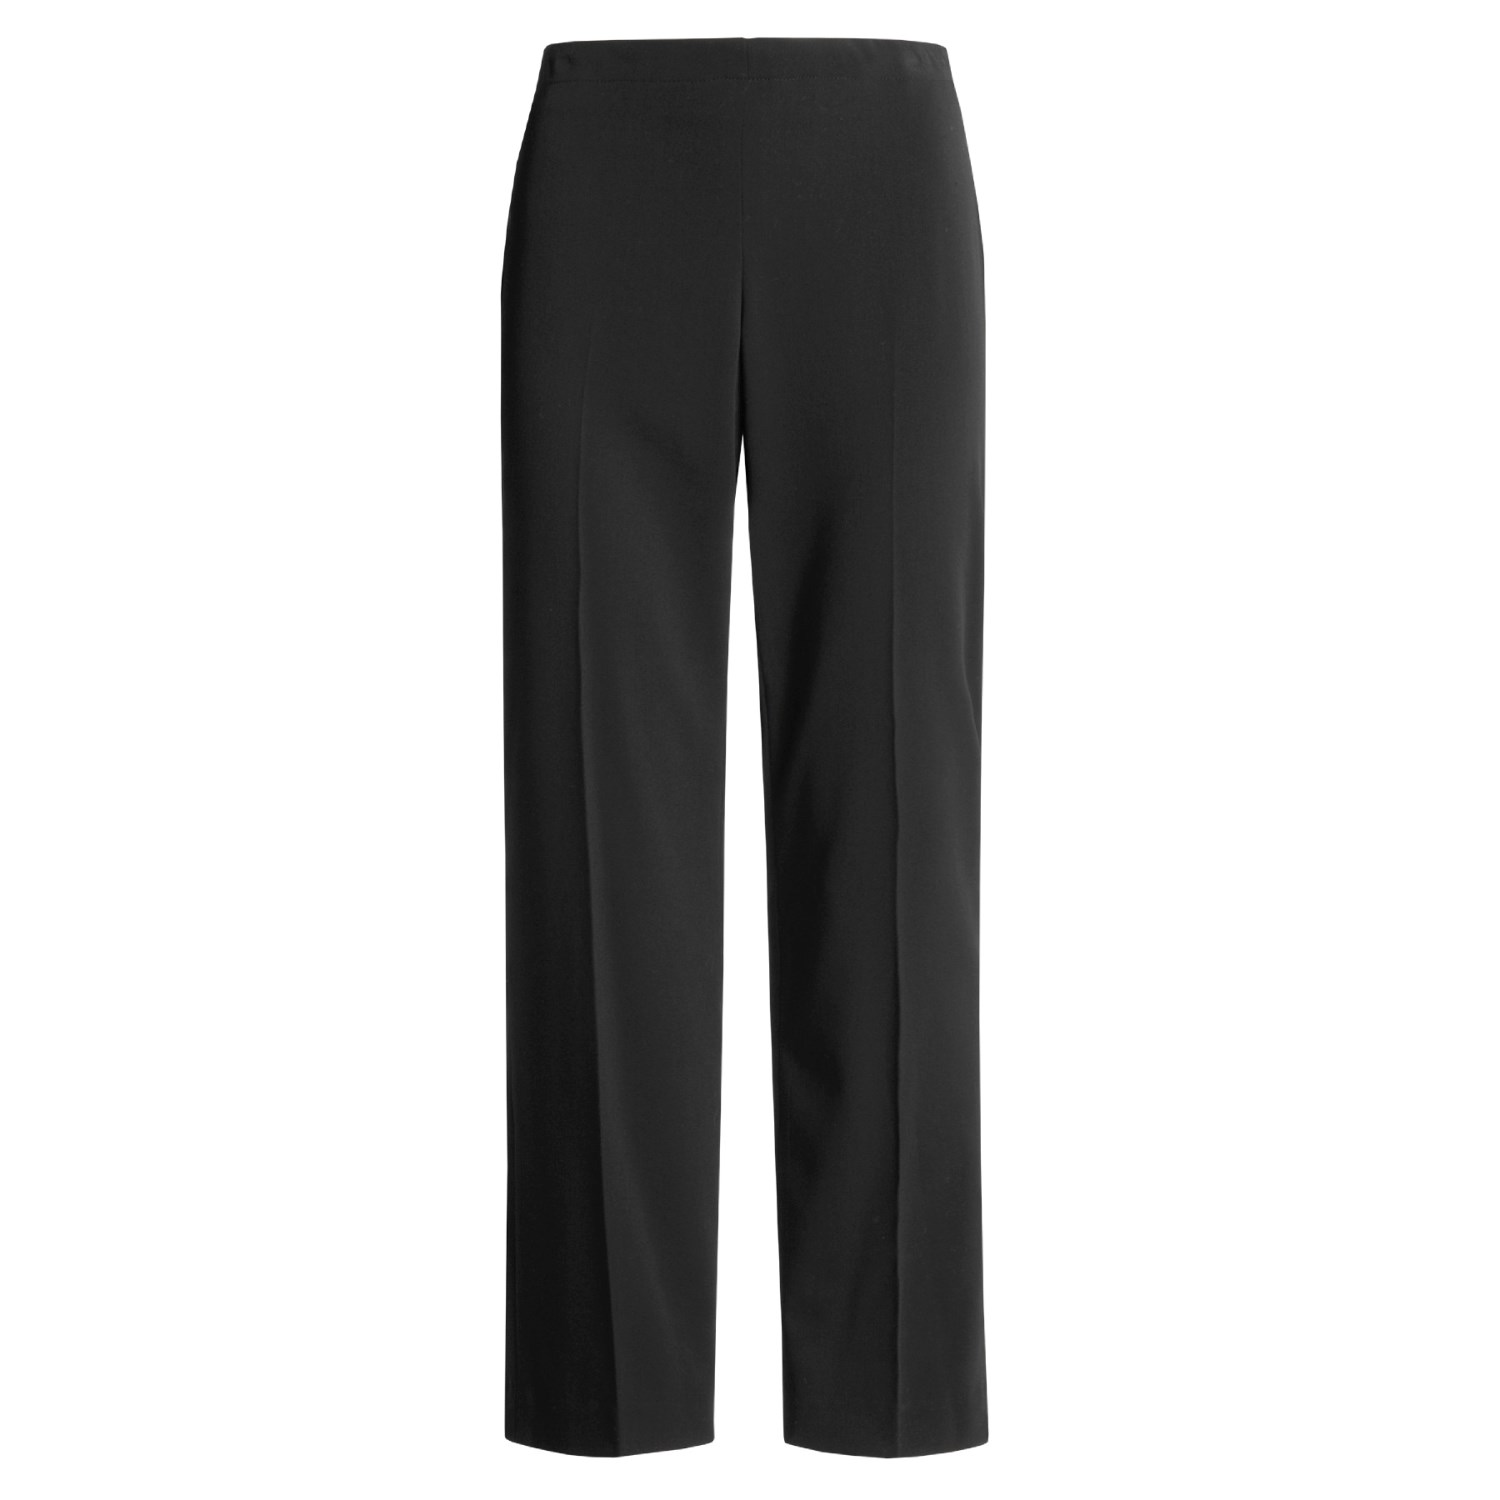 speleomyotis: Aspect Zip Womens get dressed Pants